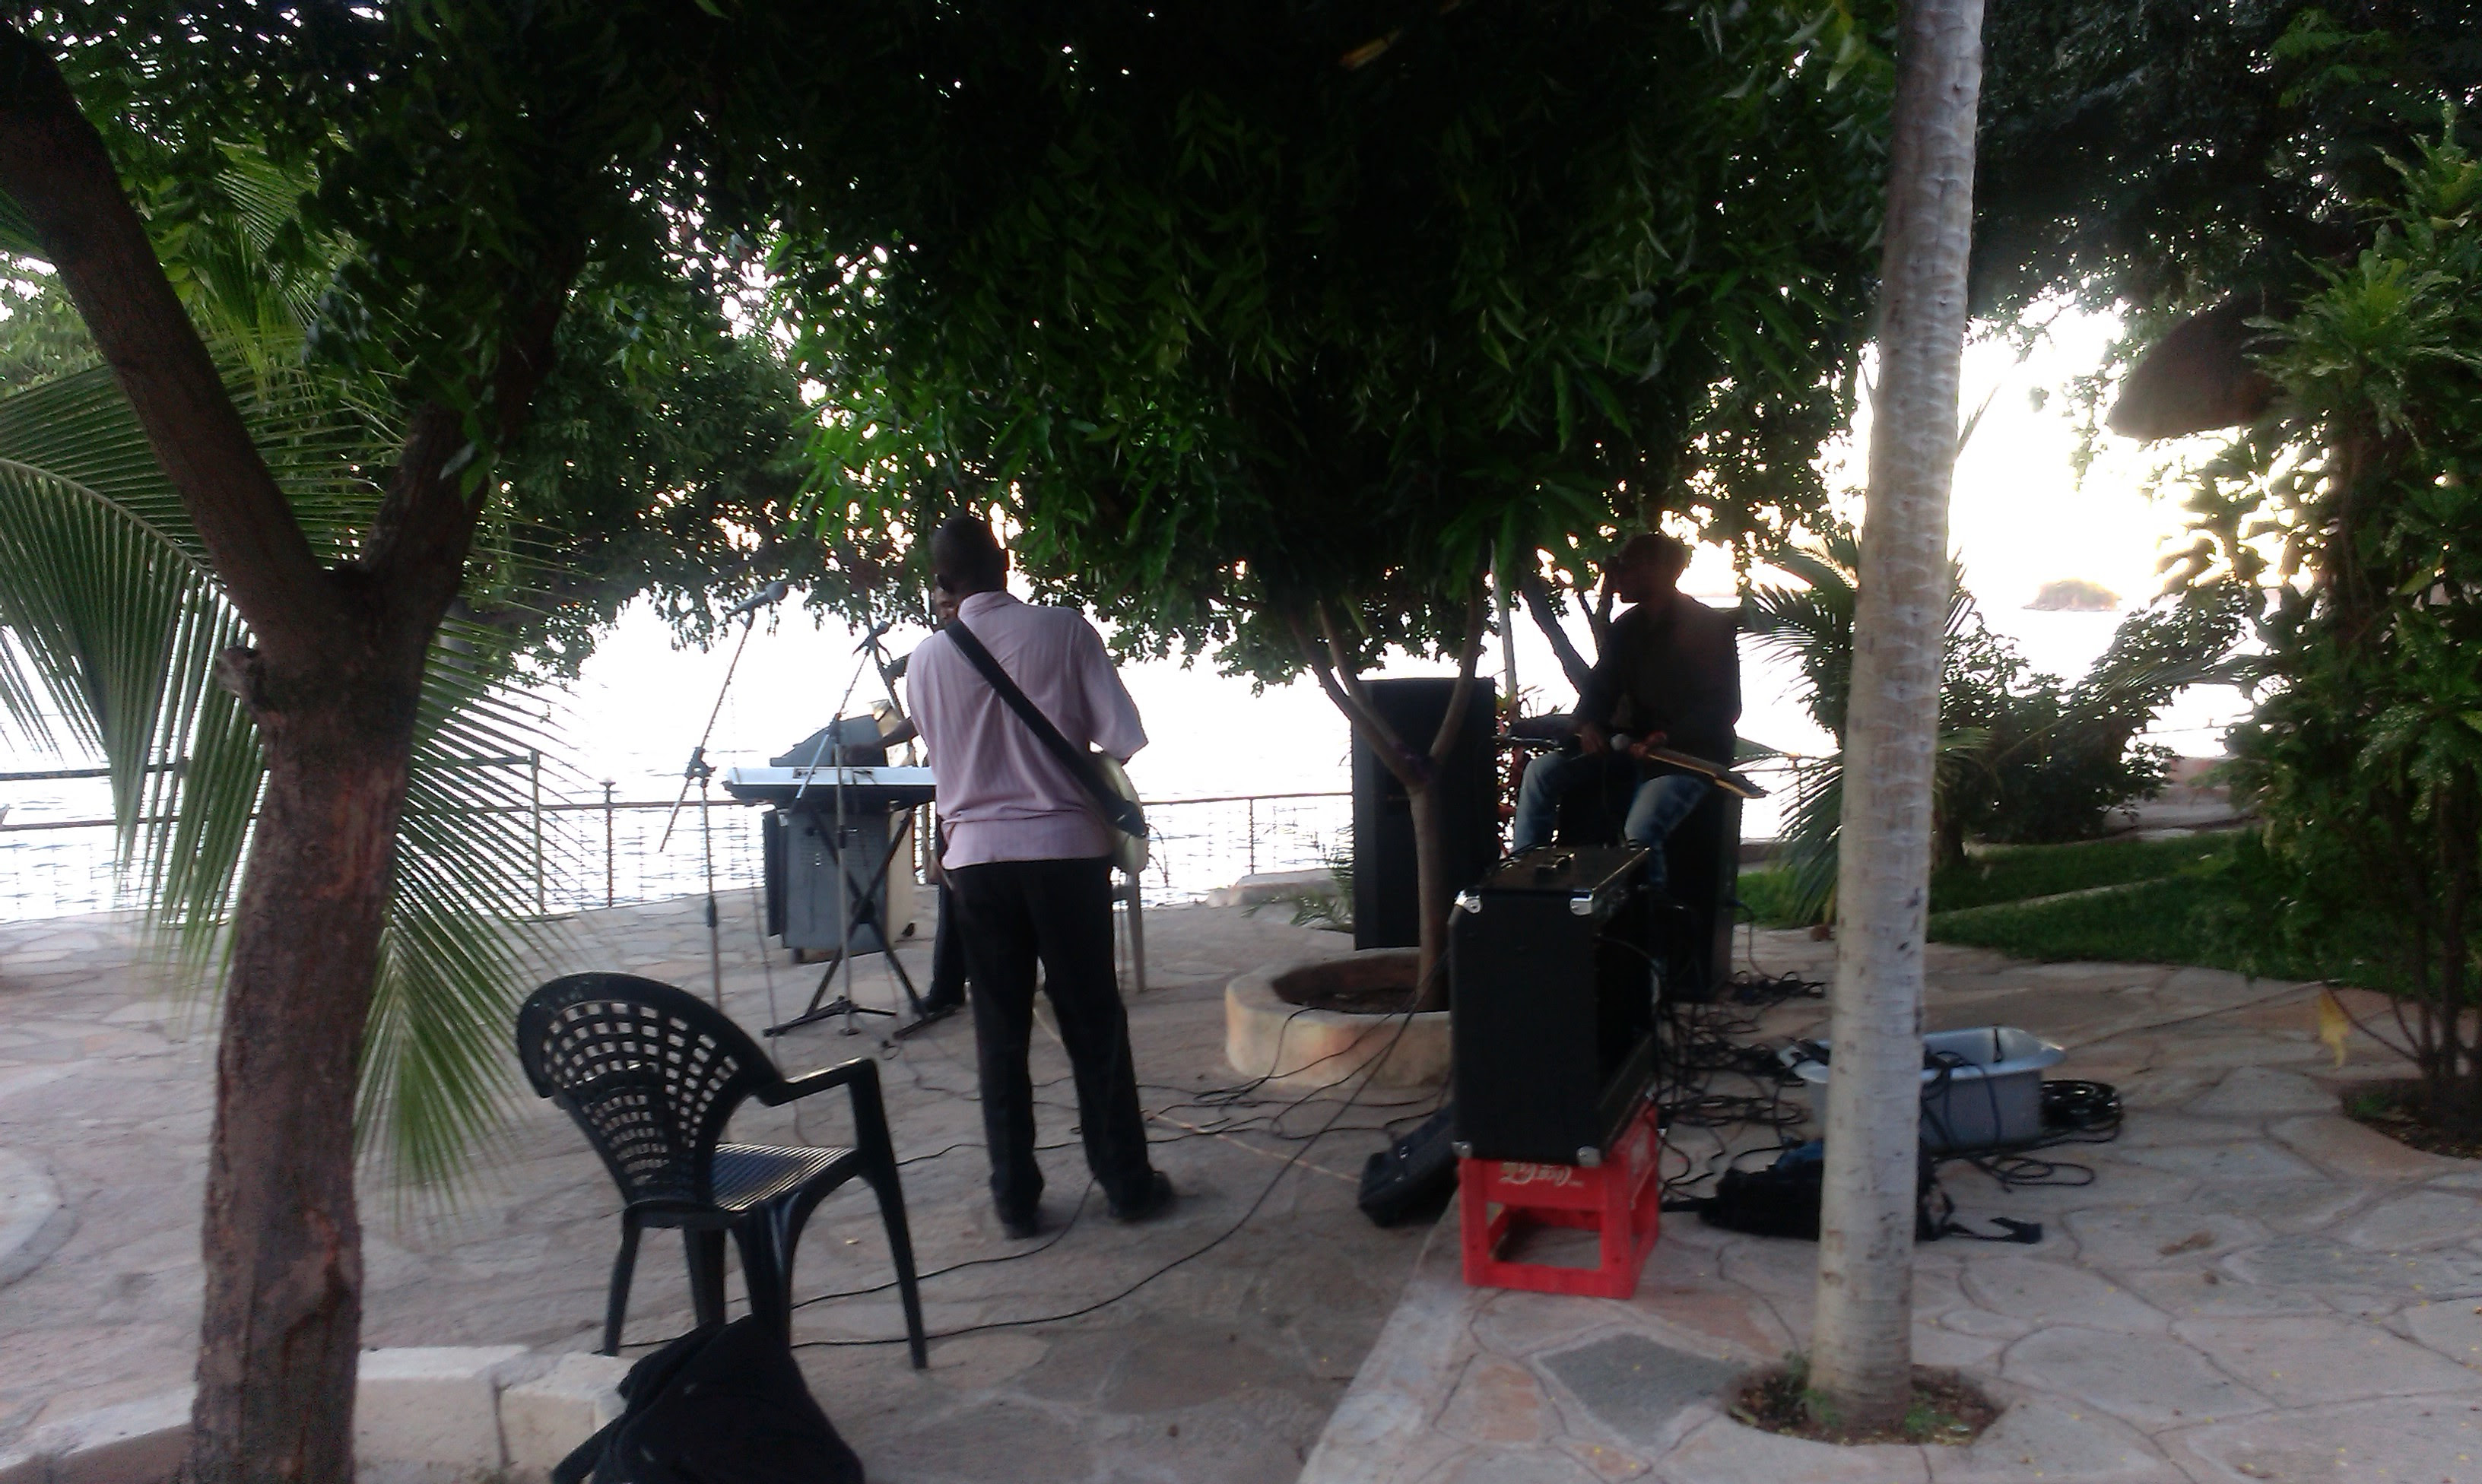 Sick band at fresh view homes..so good!!